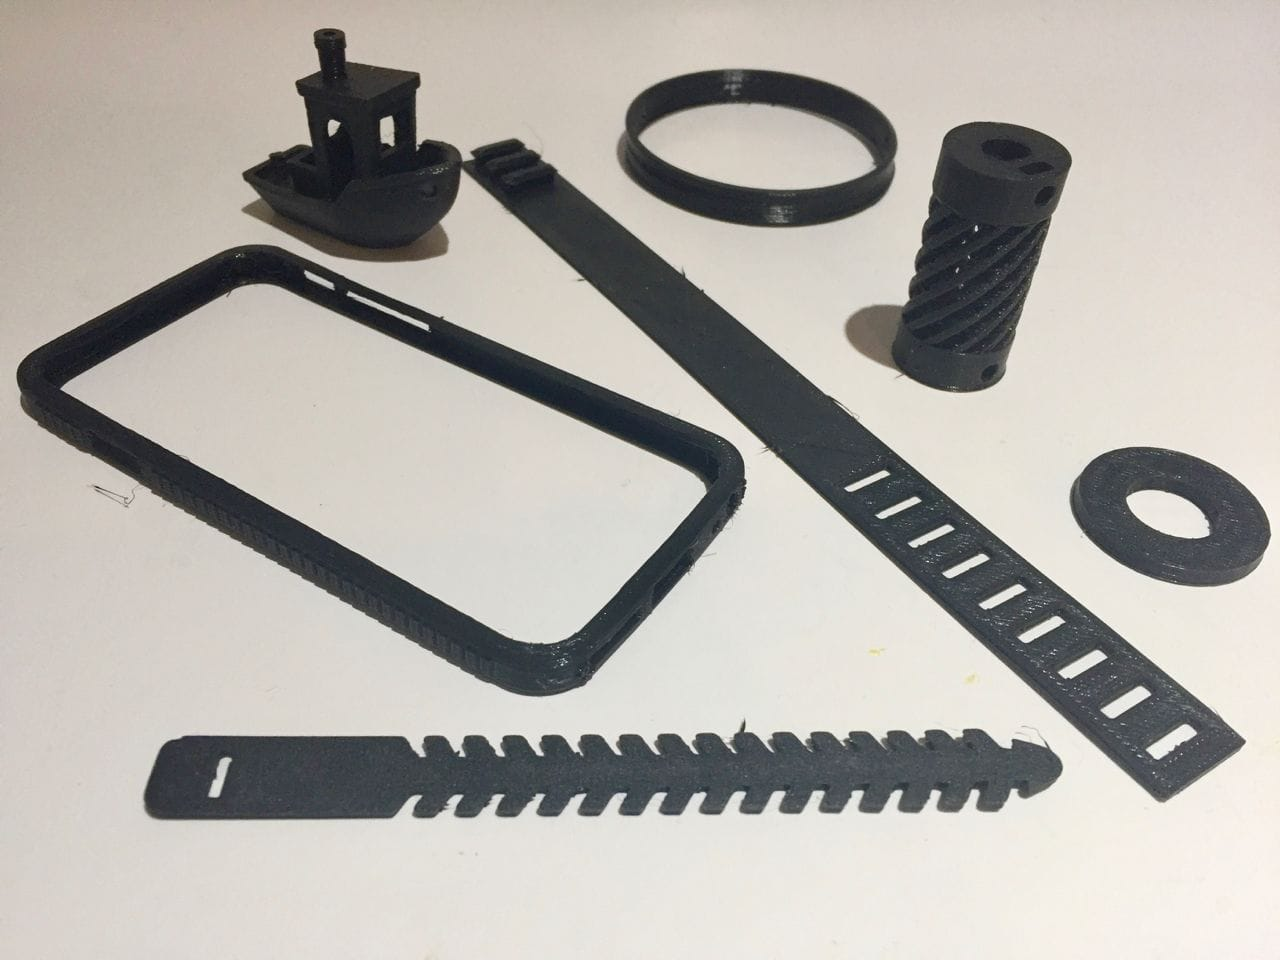 A number of functional flexible objects made with Fiberlogy's Fiberflex 40D 3D print material